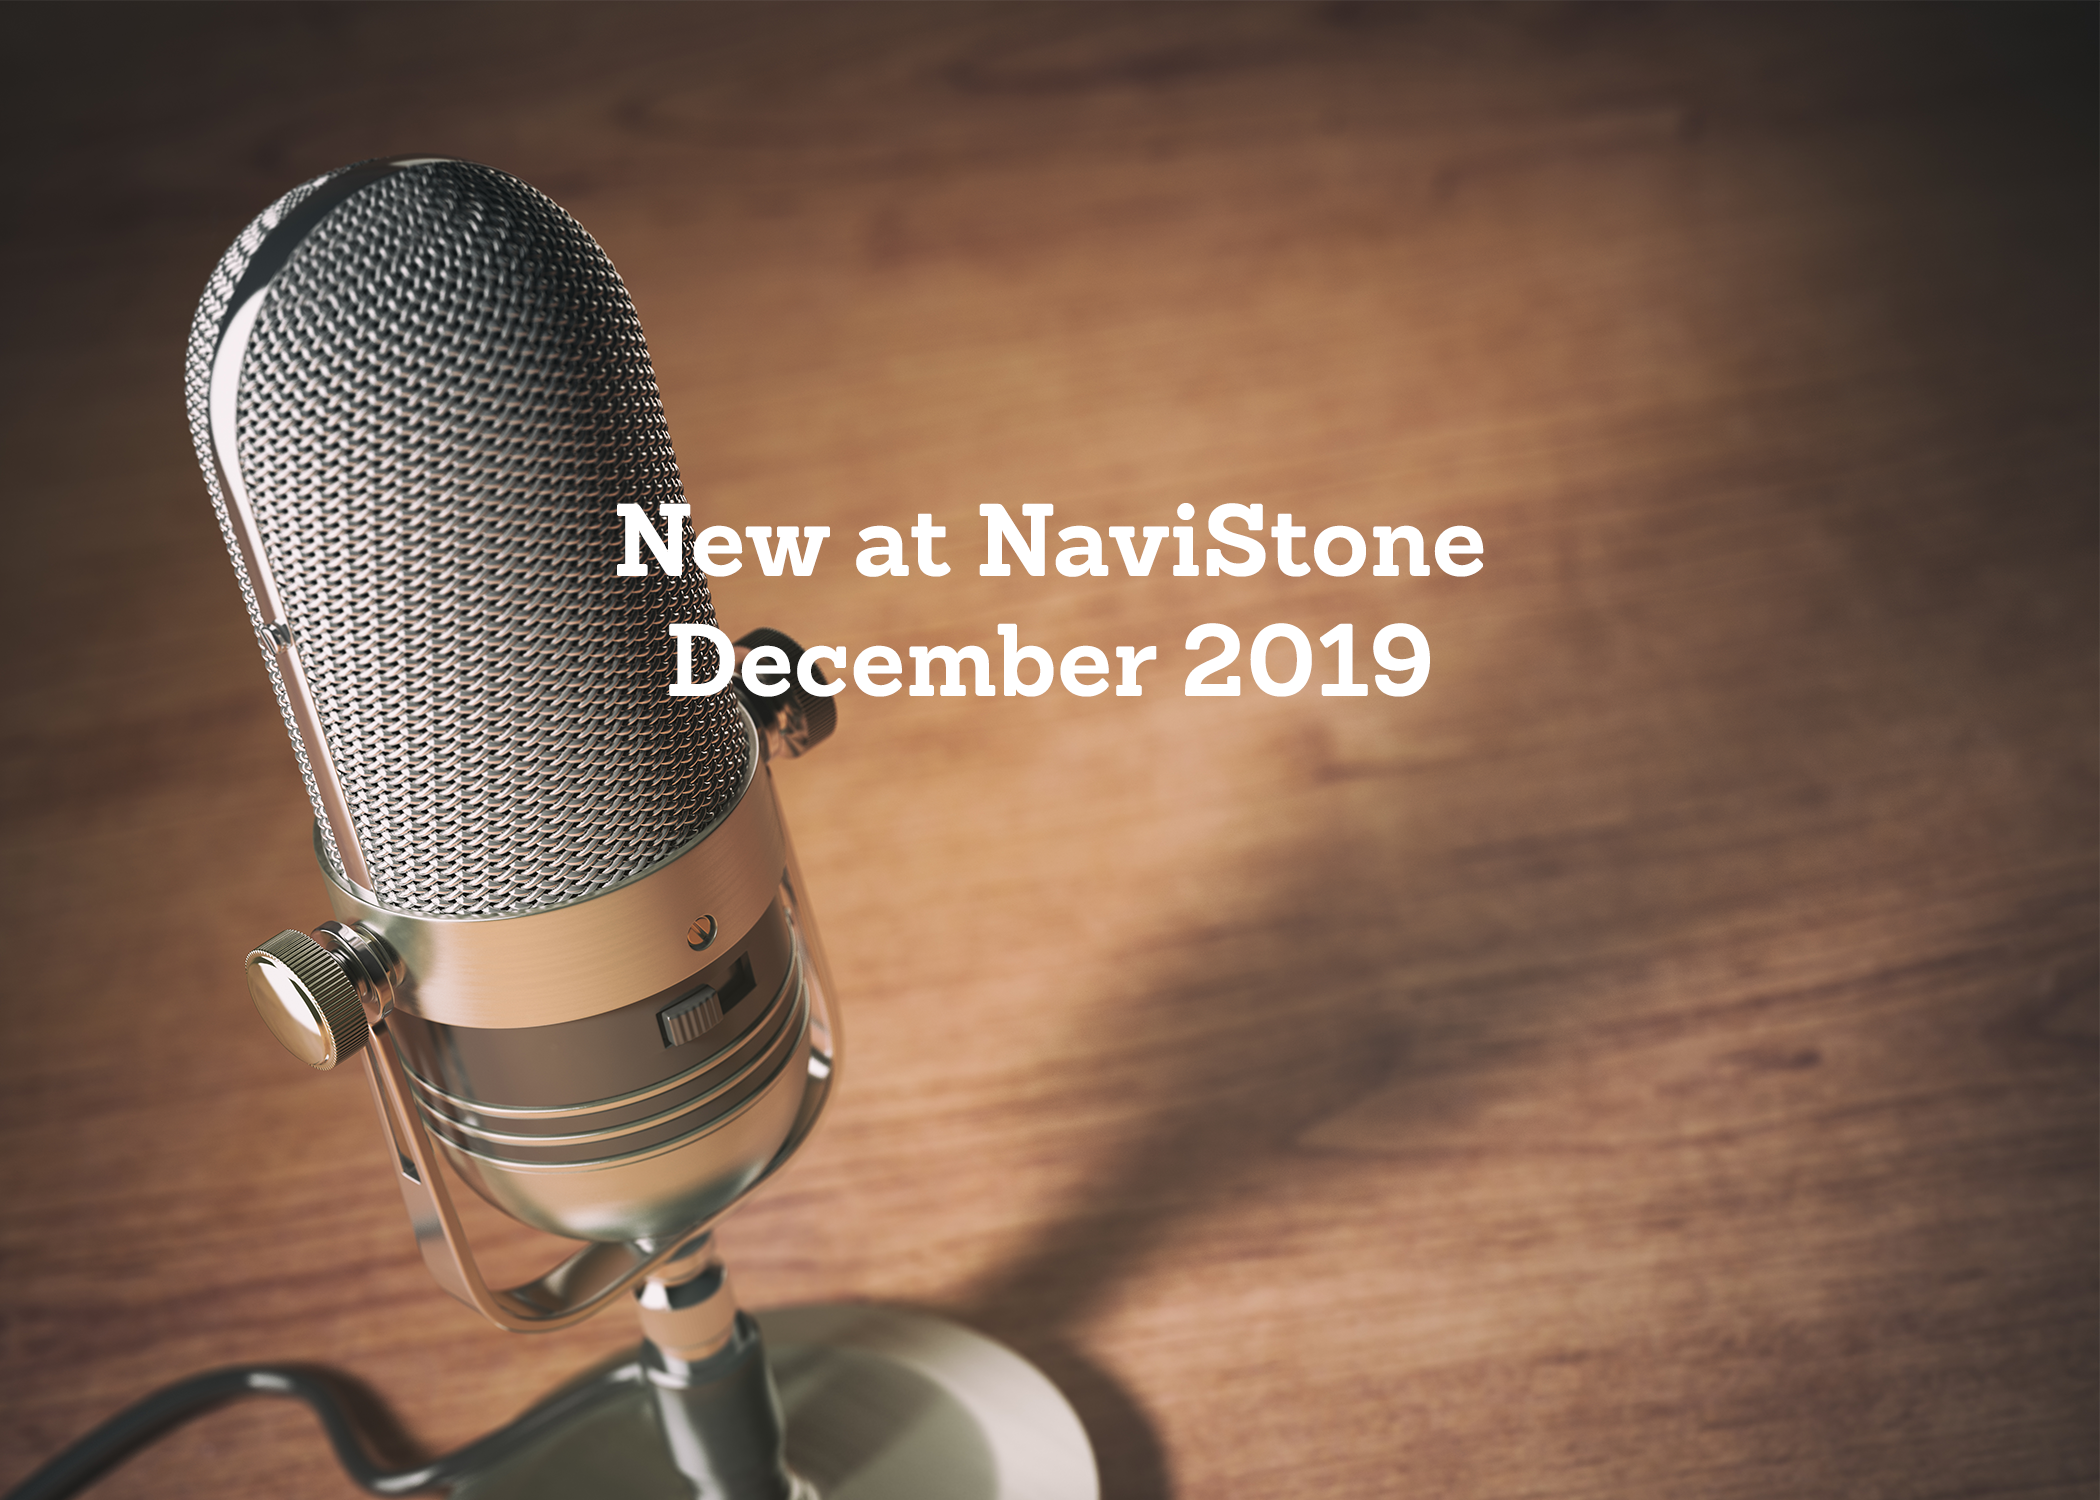 New at NaviStone December 2018